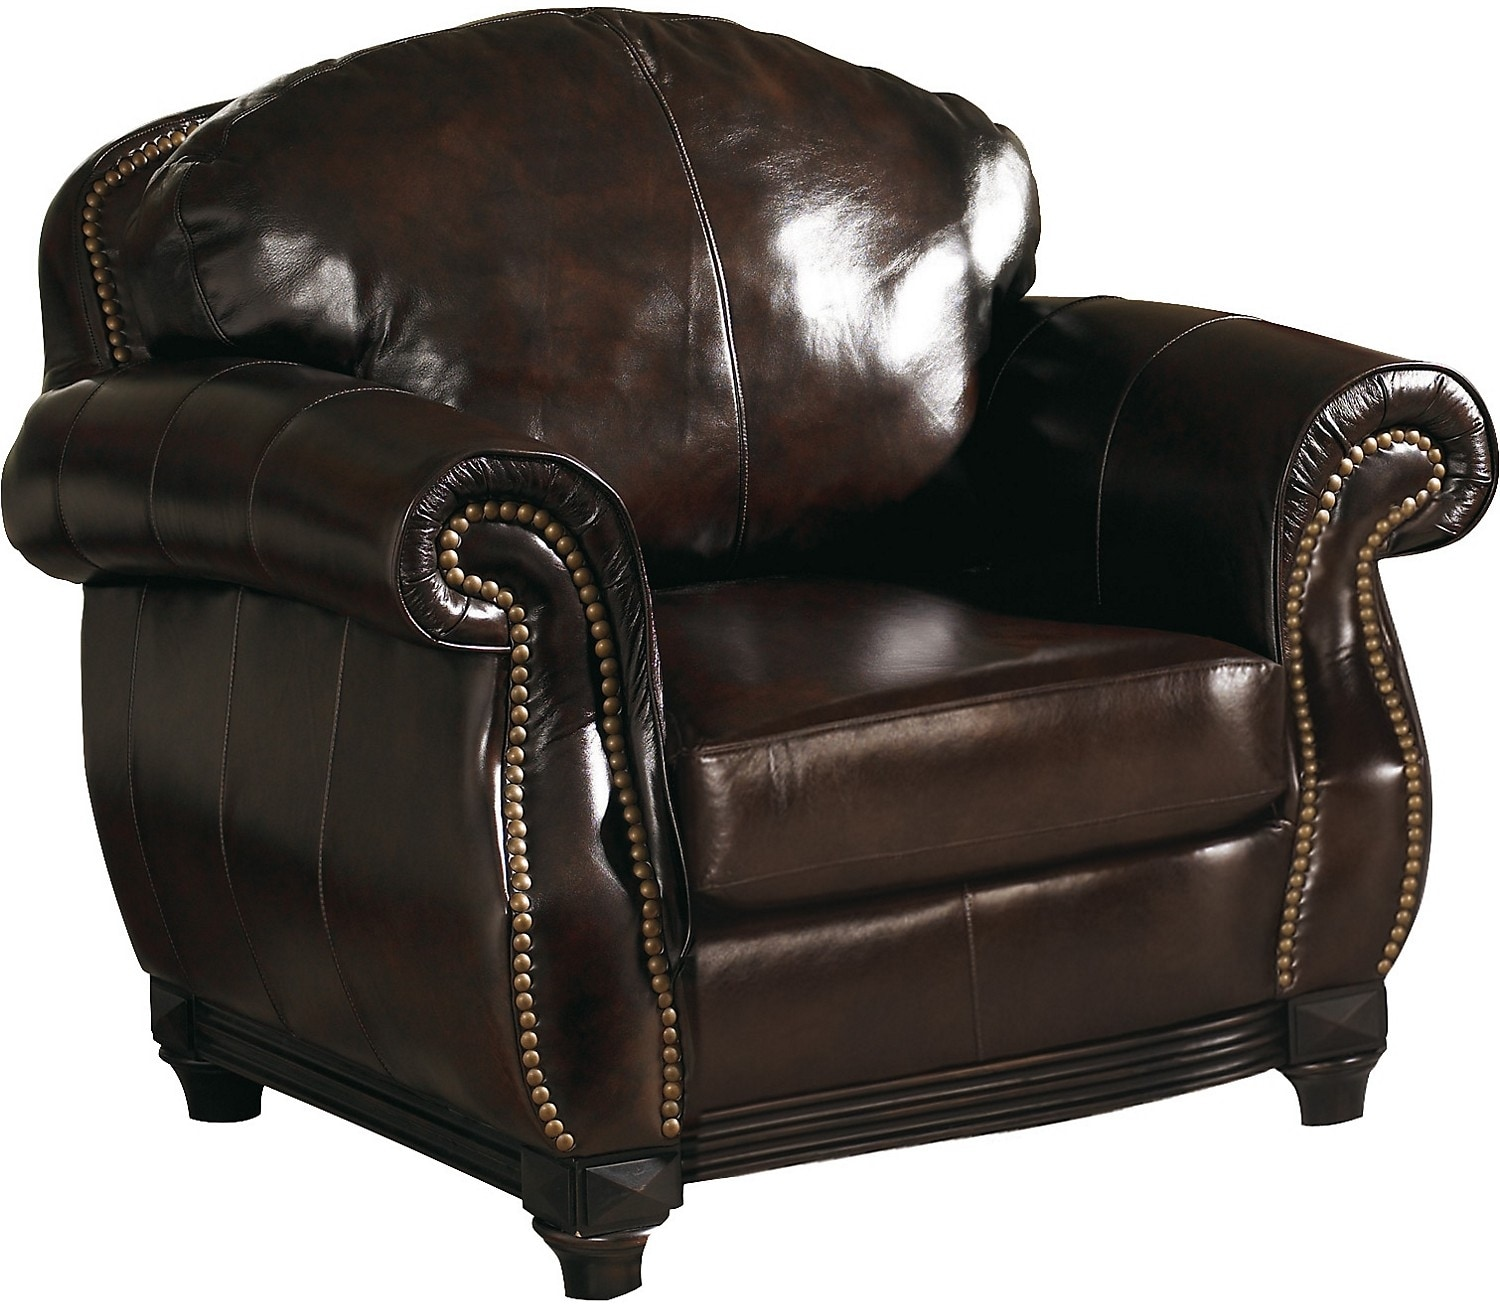 Prestige 100% Genuine Leather Chair - Brown